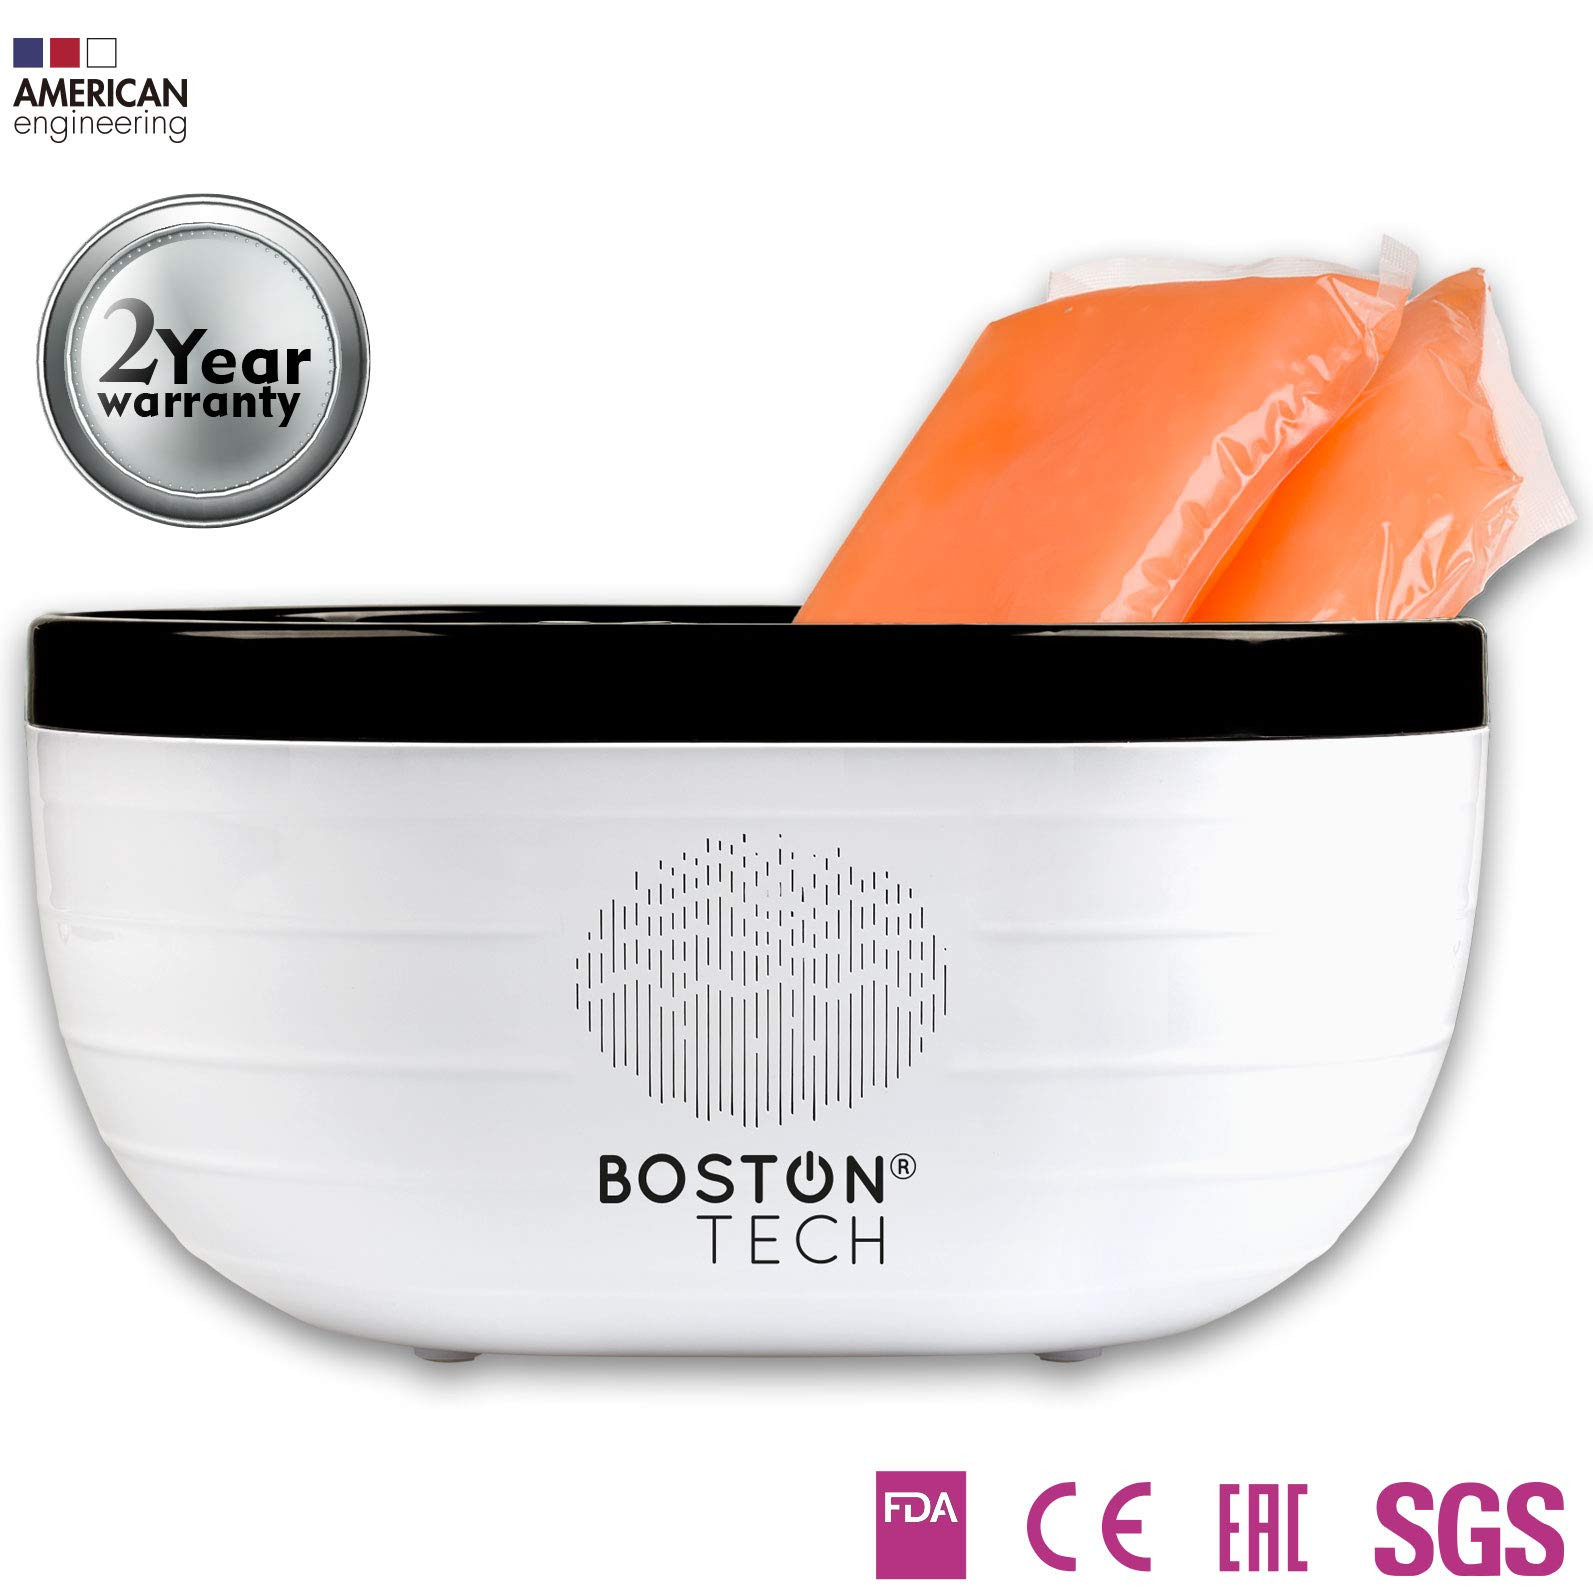 Boston Technology We-101 - Paraffin Wax Warmer Machine For Hands And Feet. Paraffin Bath Used For skin care and Thermotherapy. Helps Relieve Muscle Pain, Rheumatoid Arthritis, Stiff Muscles and Edema by Boston Tech